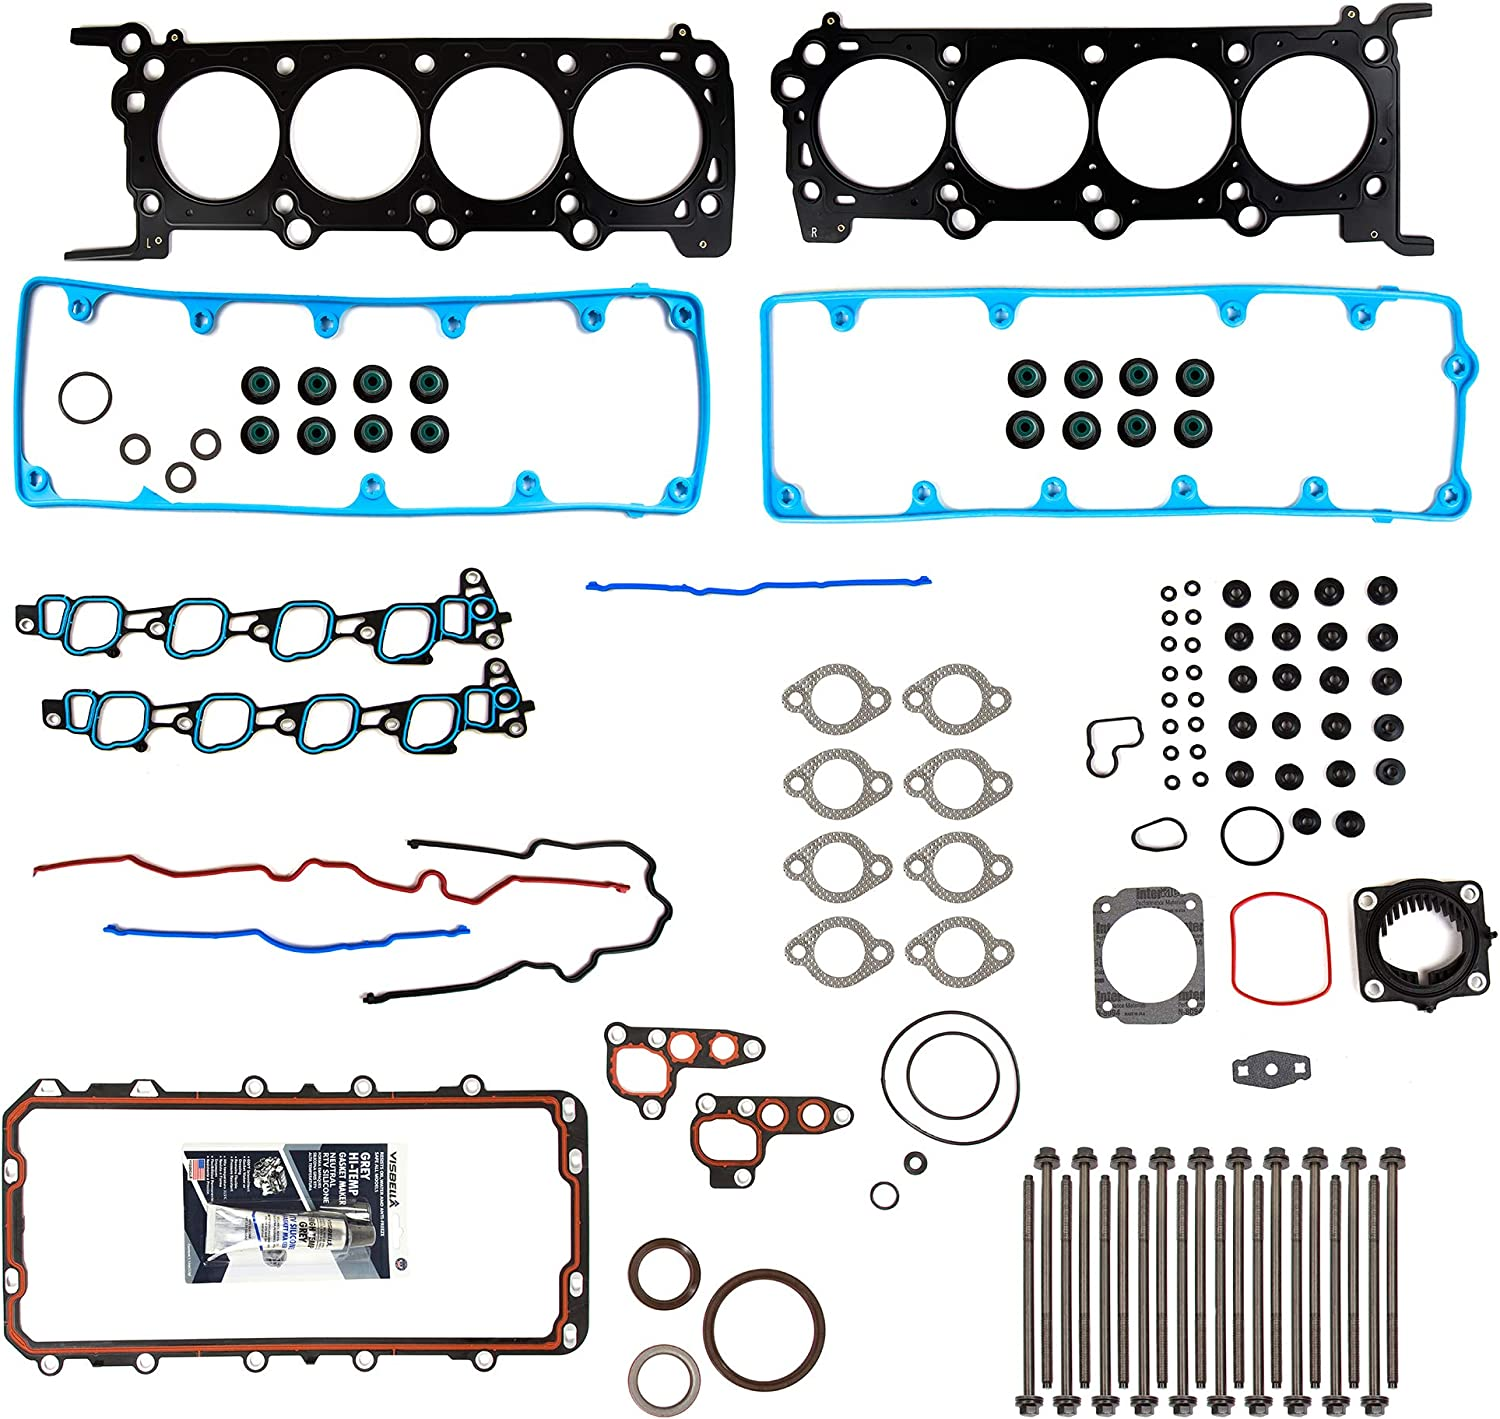 Evergreen FSHB8-21212 Full Gasket Set Head Bolts Fit 2009-2011 Ford Crown Victoria Lincoln Mercury 4.6